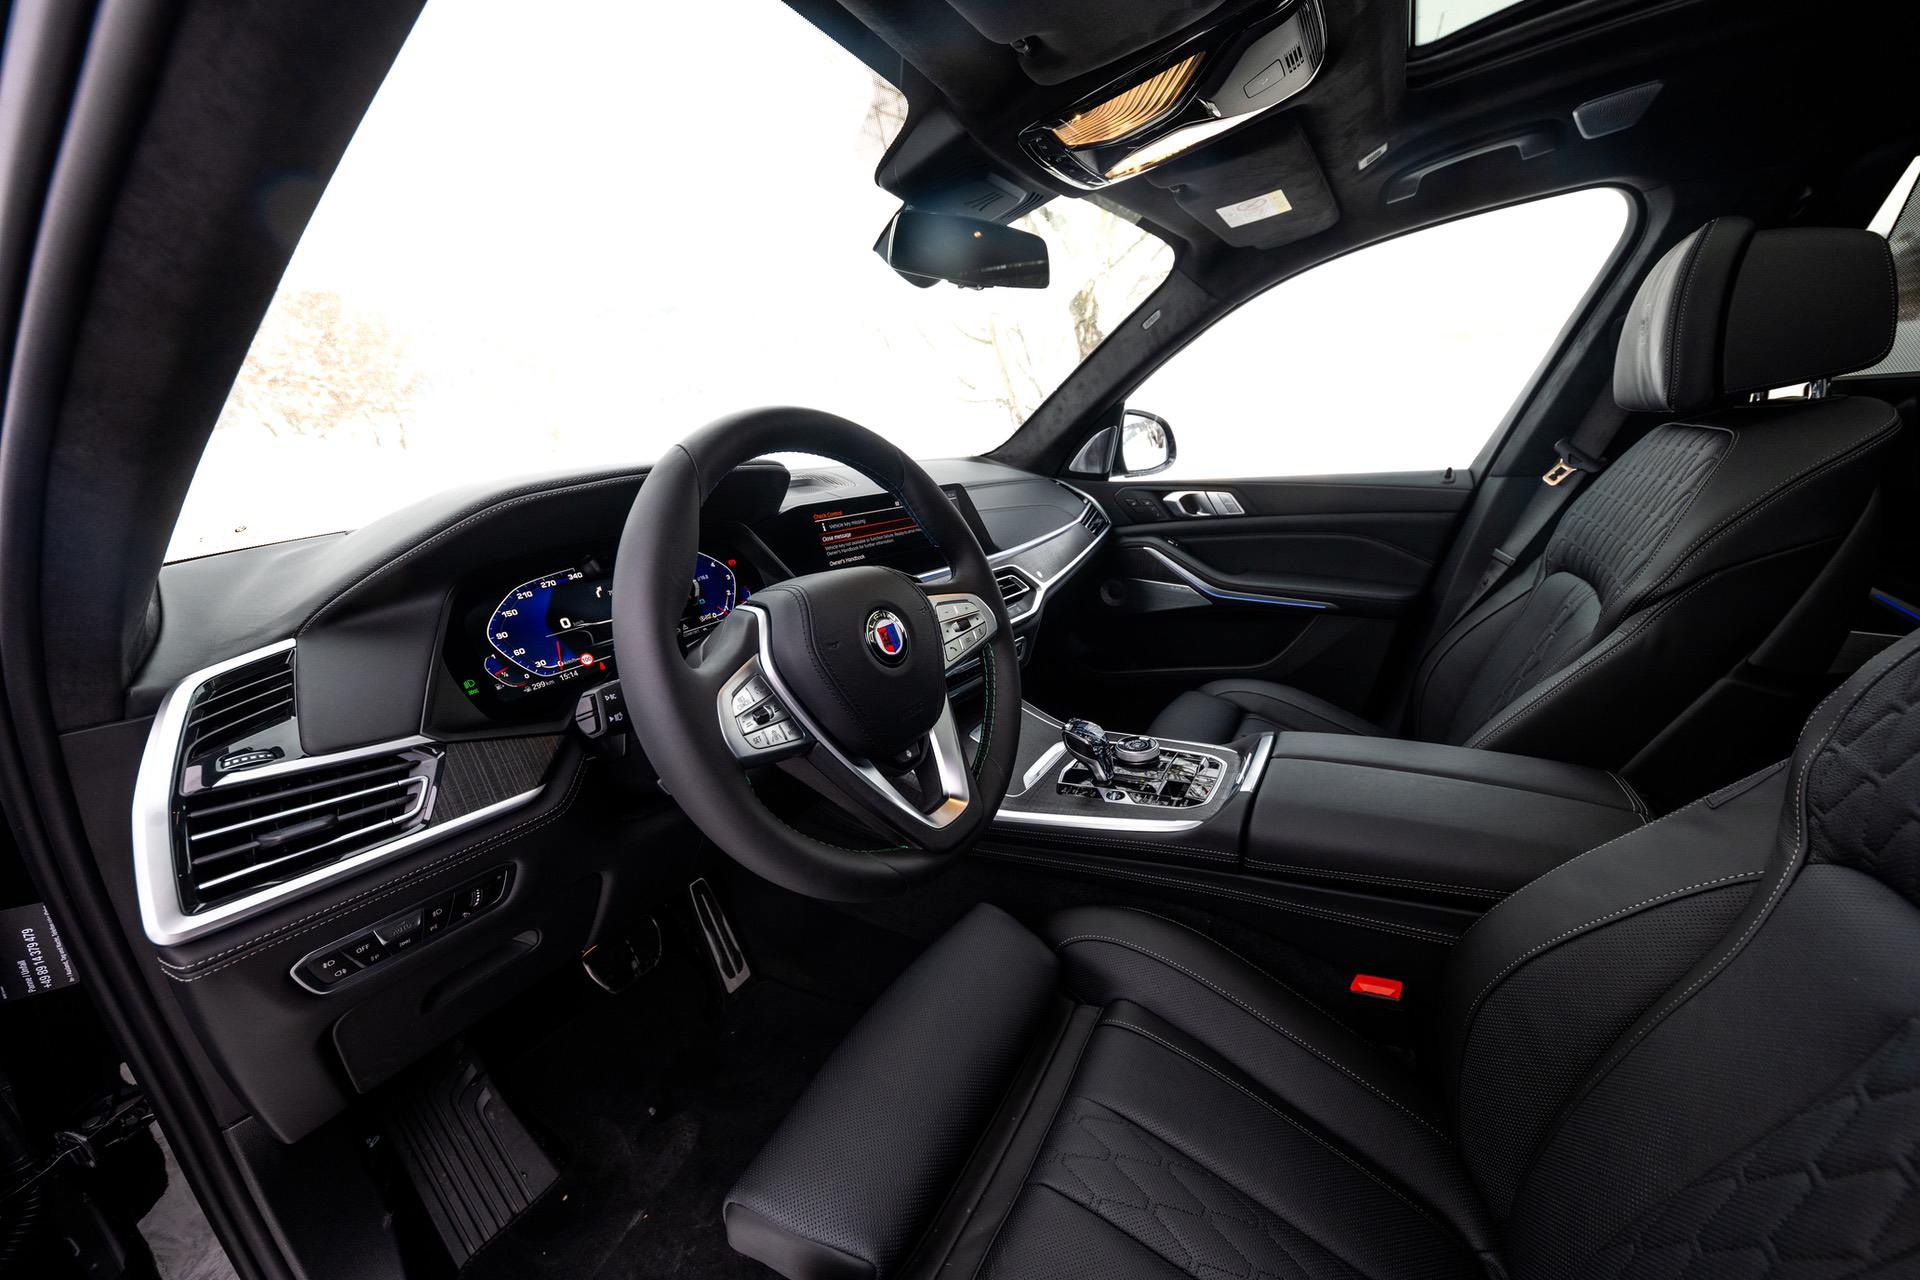 TEST DRIVE: 2021 BMW ALPINA XB7 – Smooth, Fast, Agile, Understated but Characterful SUV